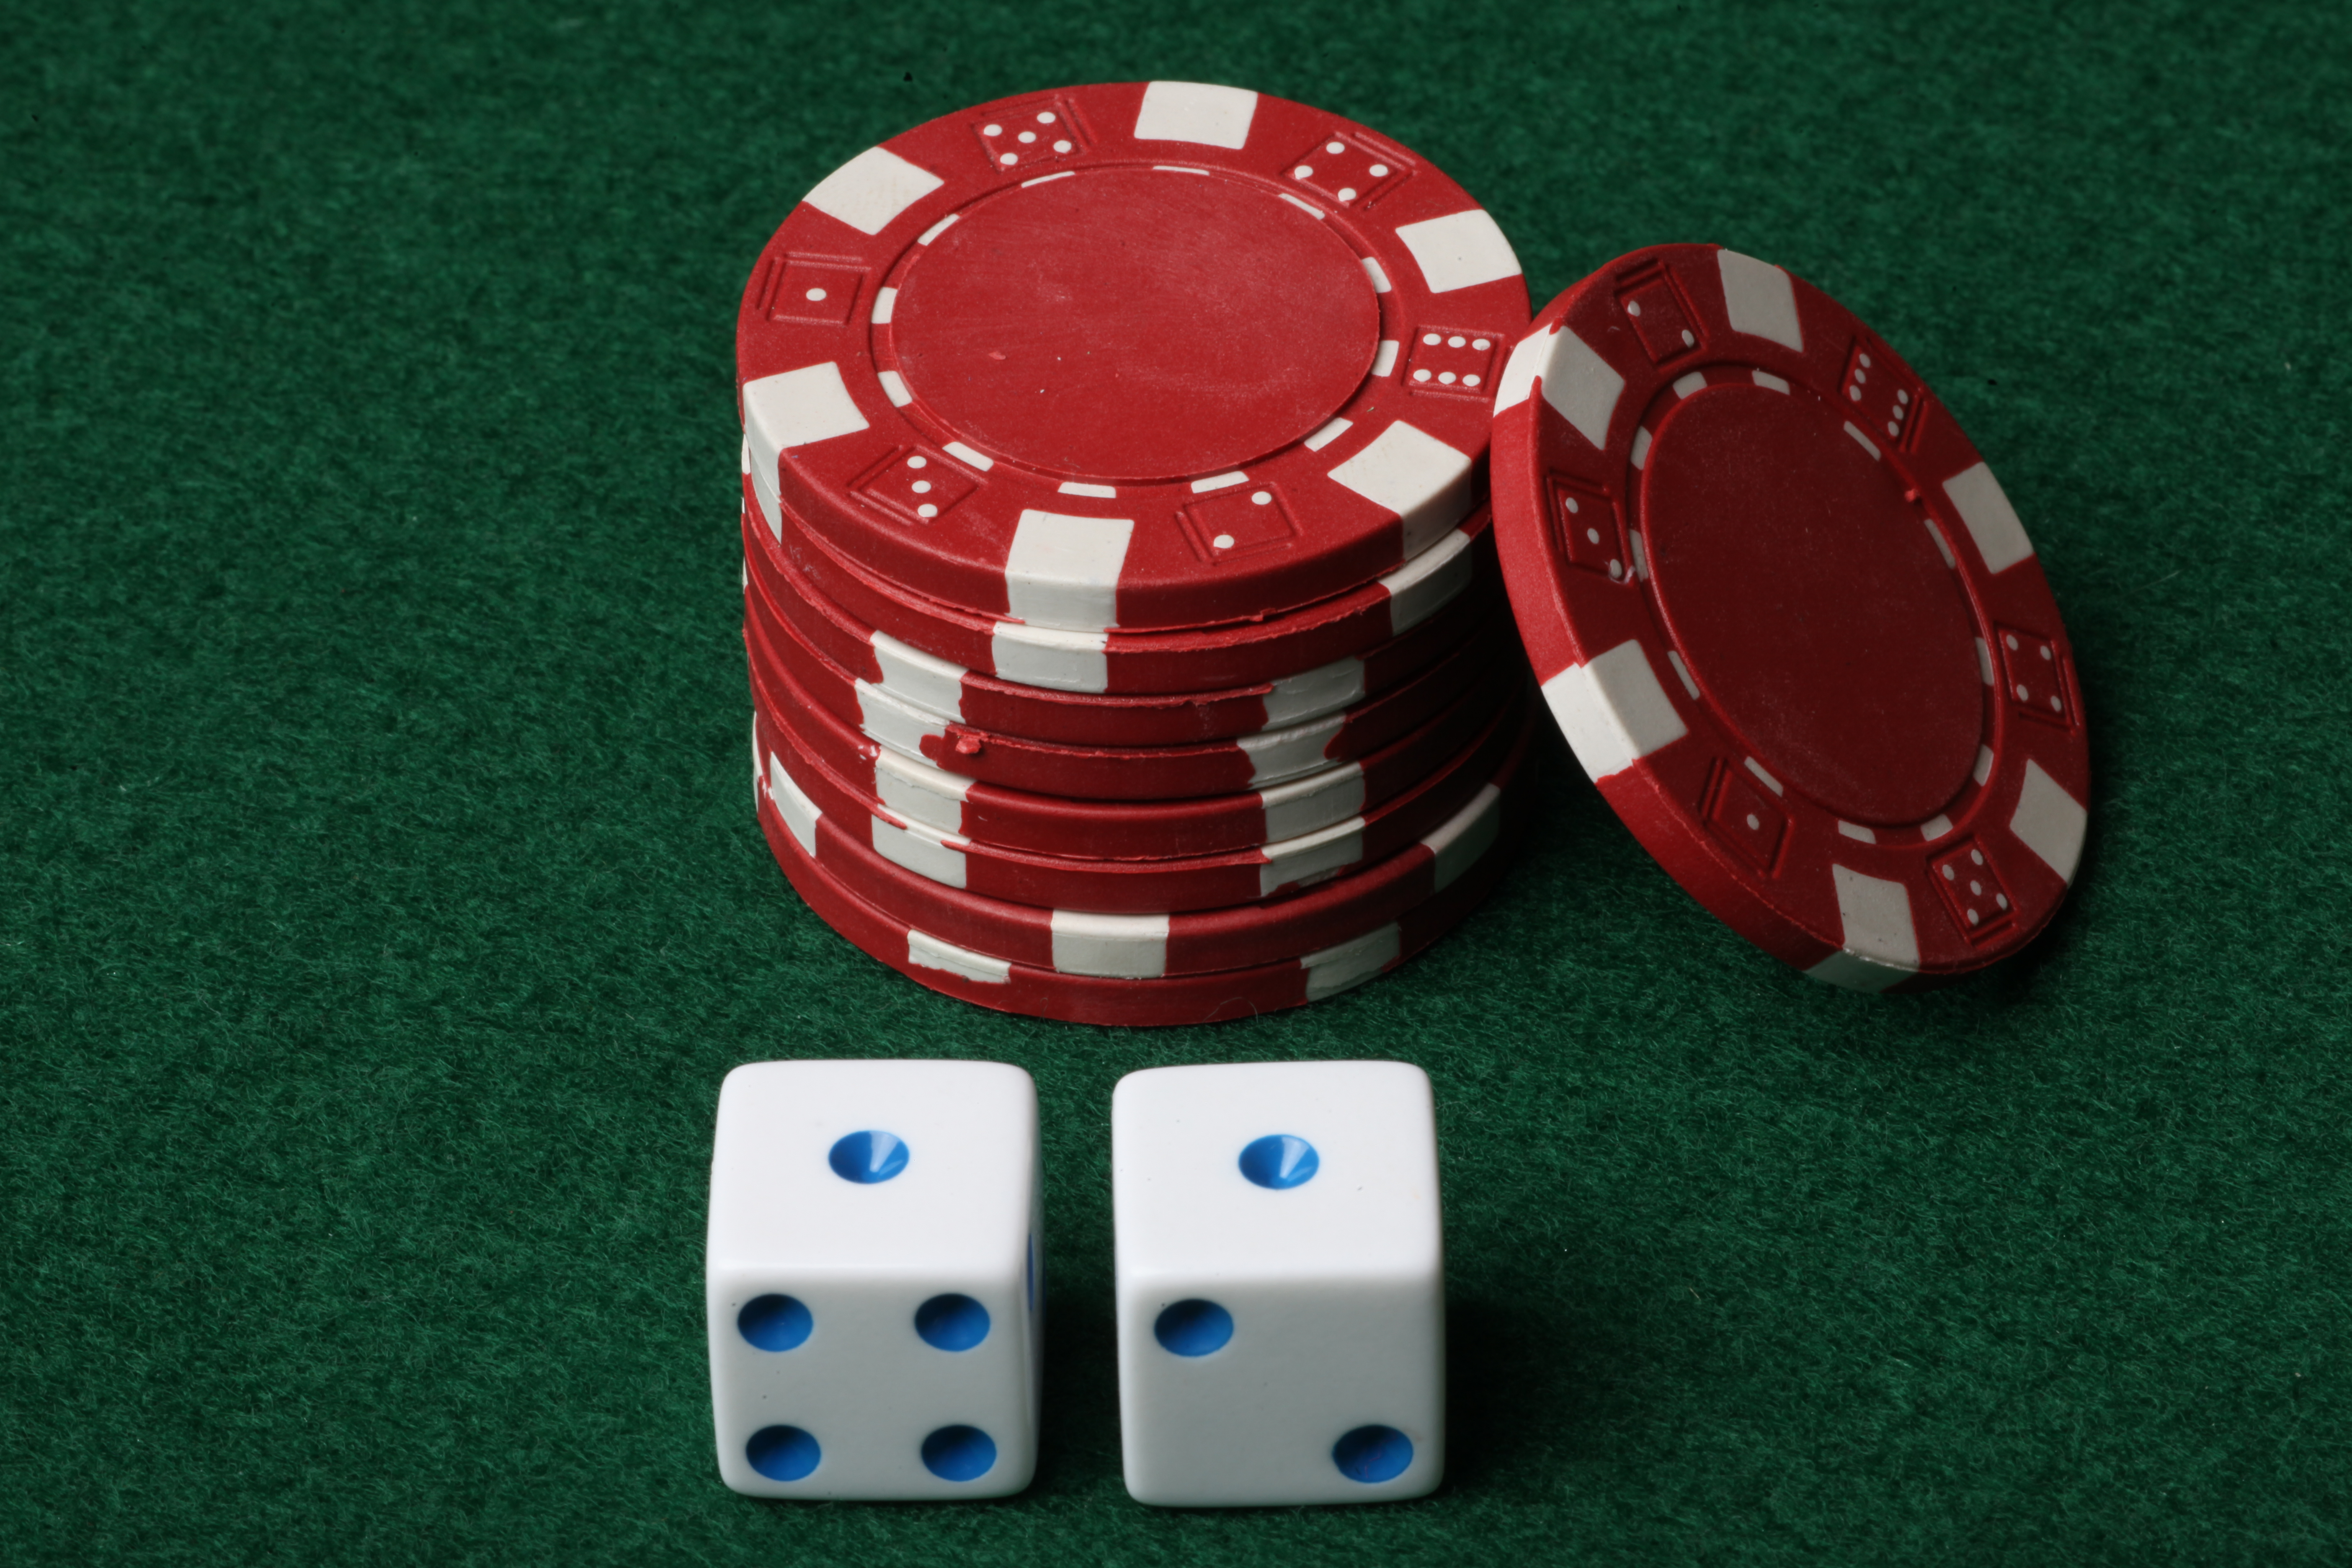 Poker chips and Dice, Bet, Las, Vegas, Table, HQ Photo